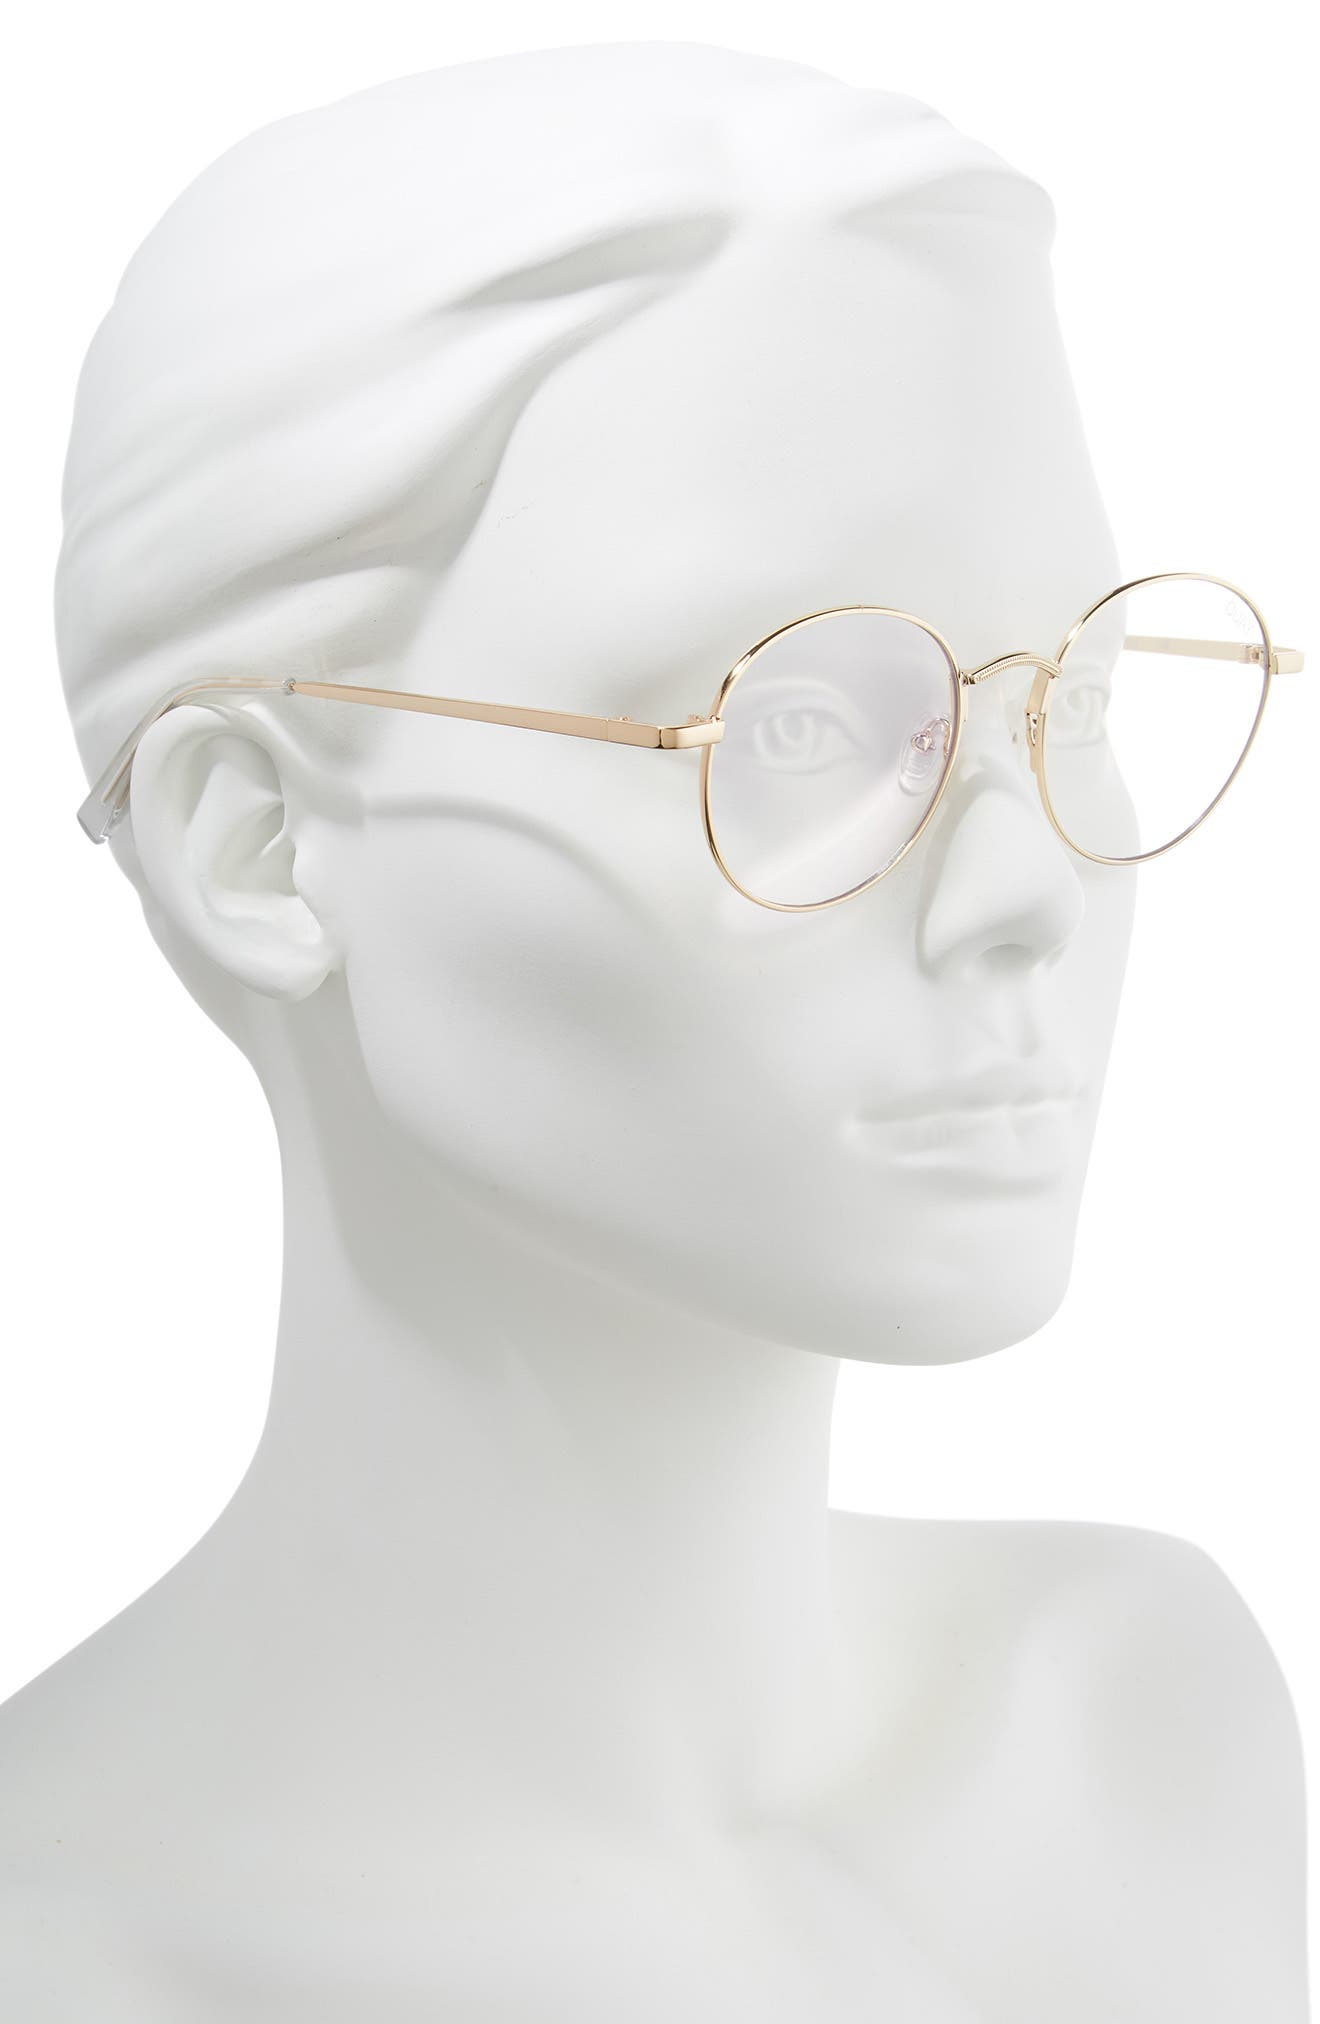 I See You 49mm Round Fashion Glasses,                             Alternate thumbnail 2, color,                             GOLD/ CLEAR